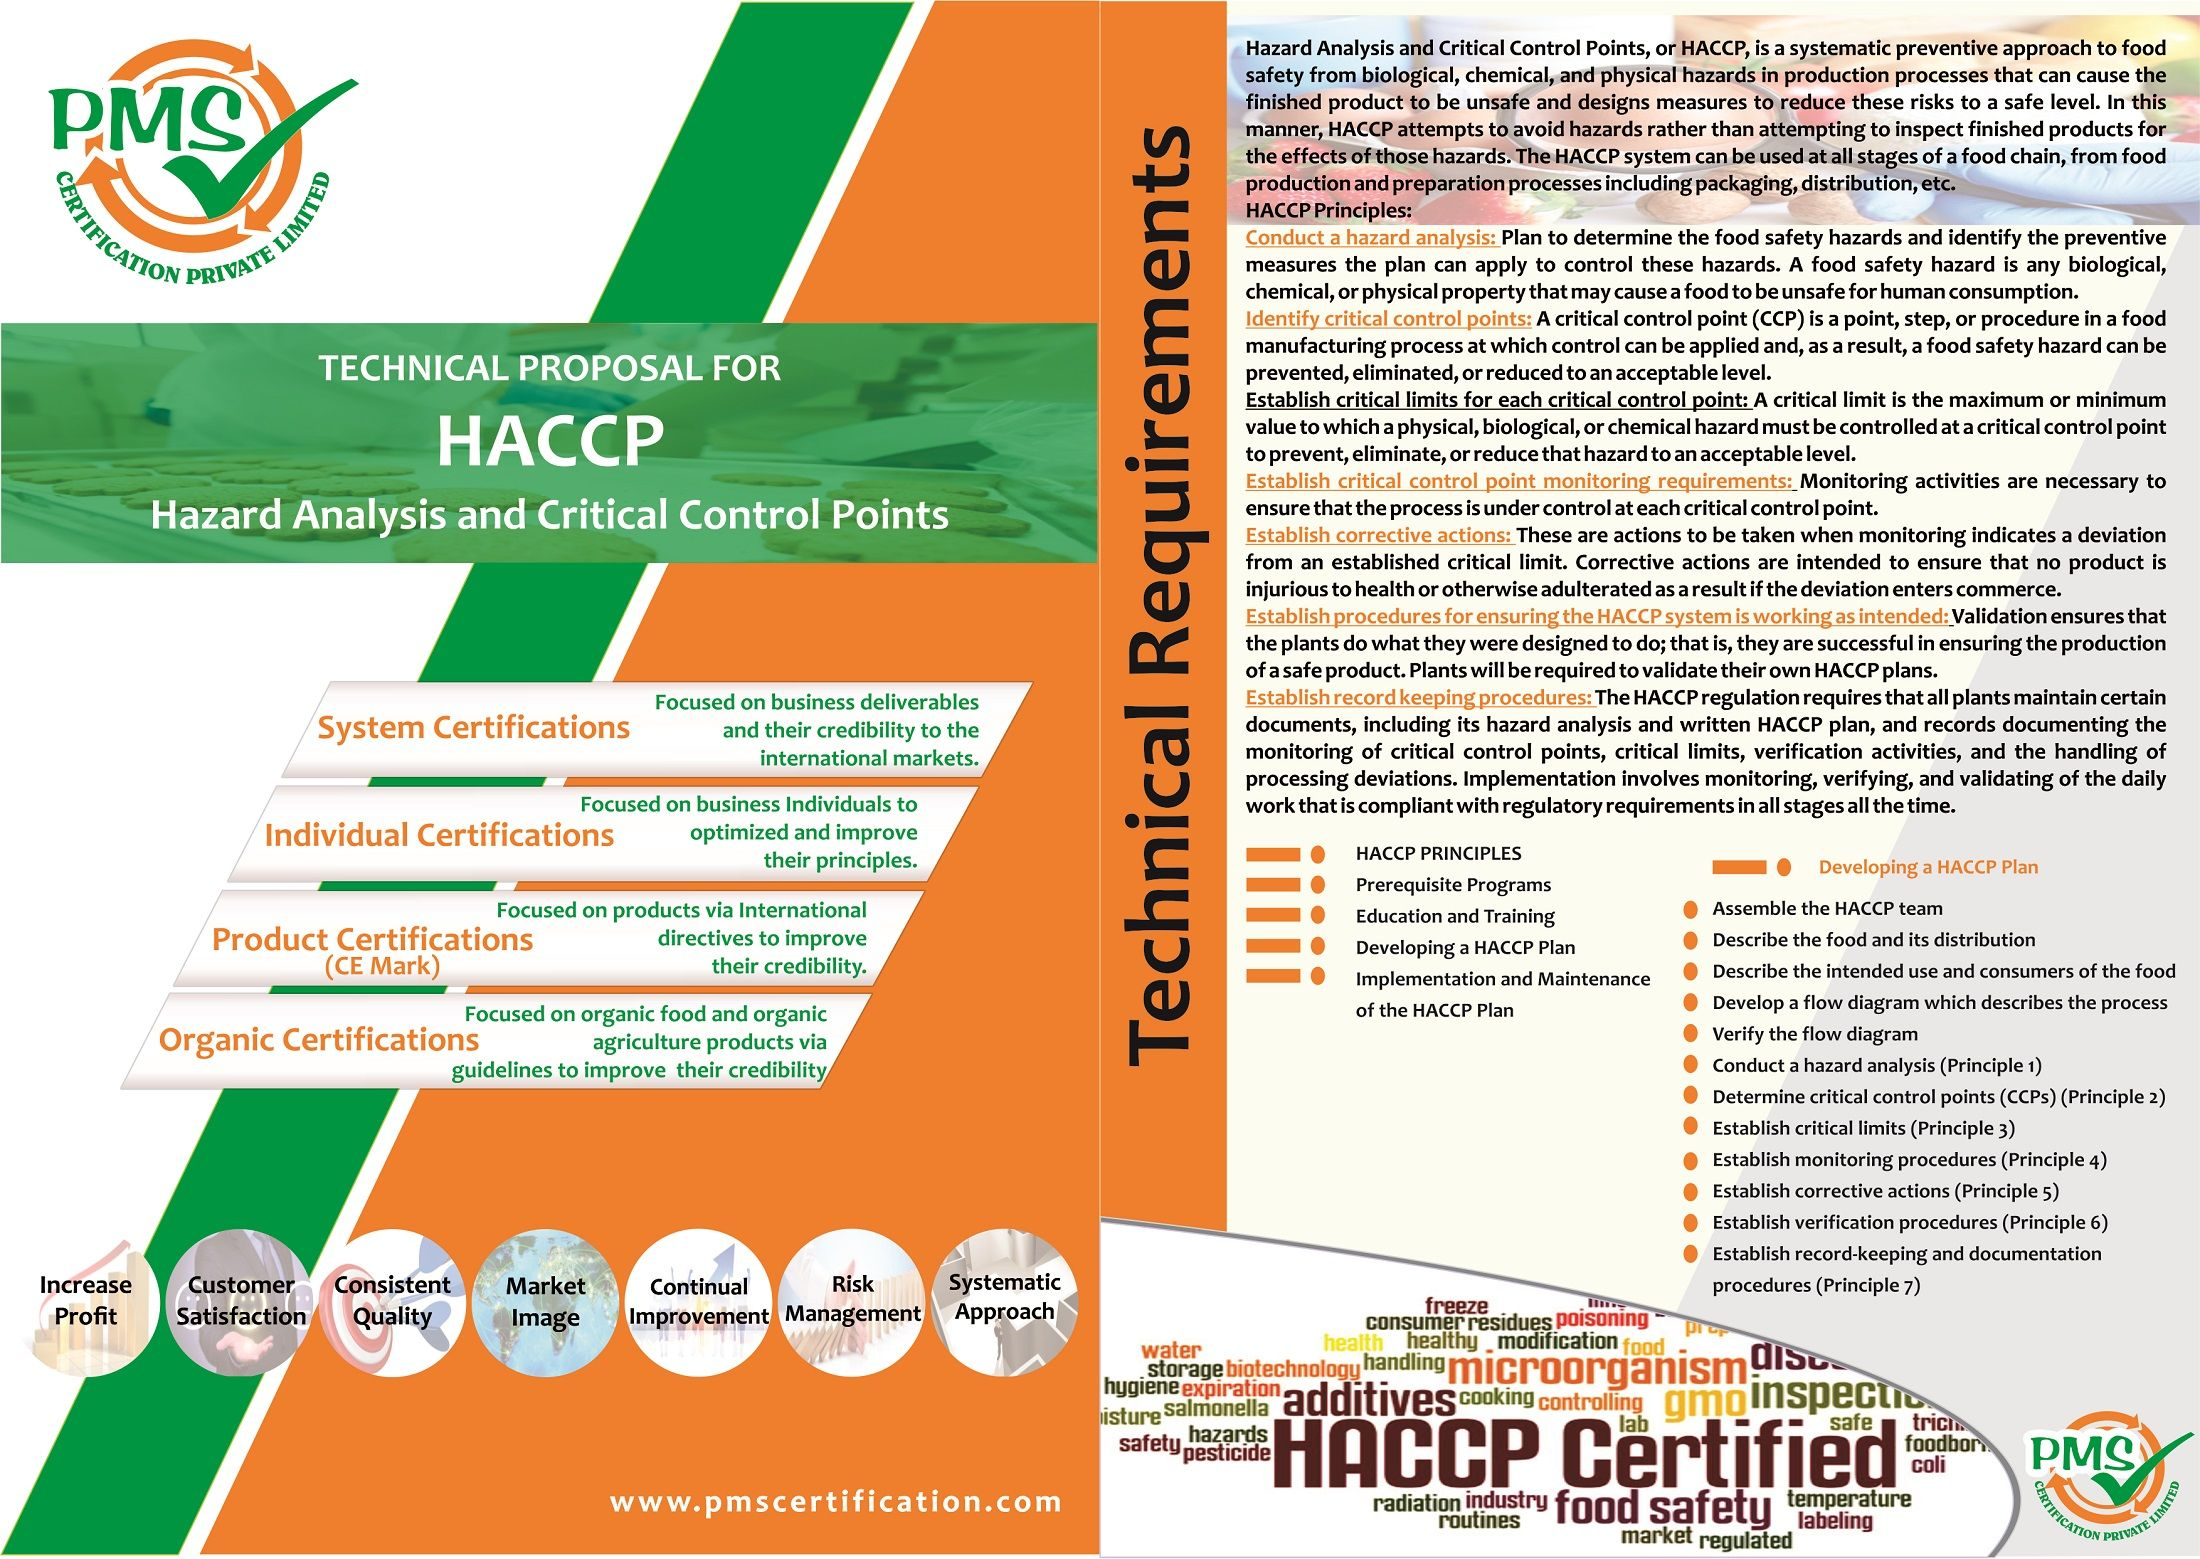 Hazard analysis and critical control points, or HACCP, is a